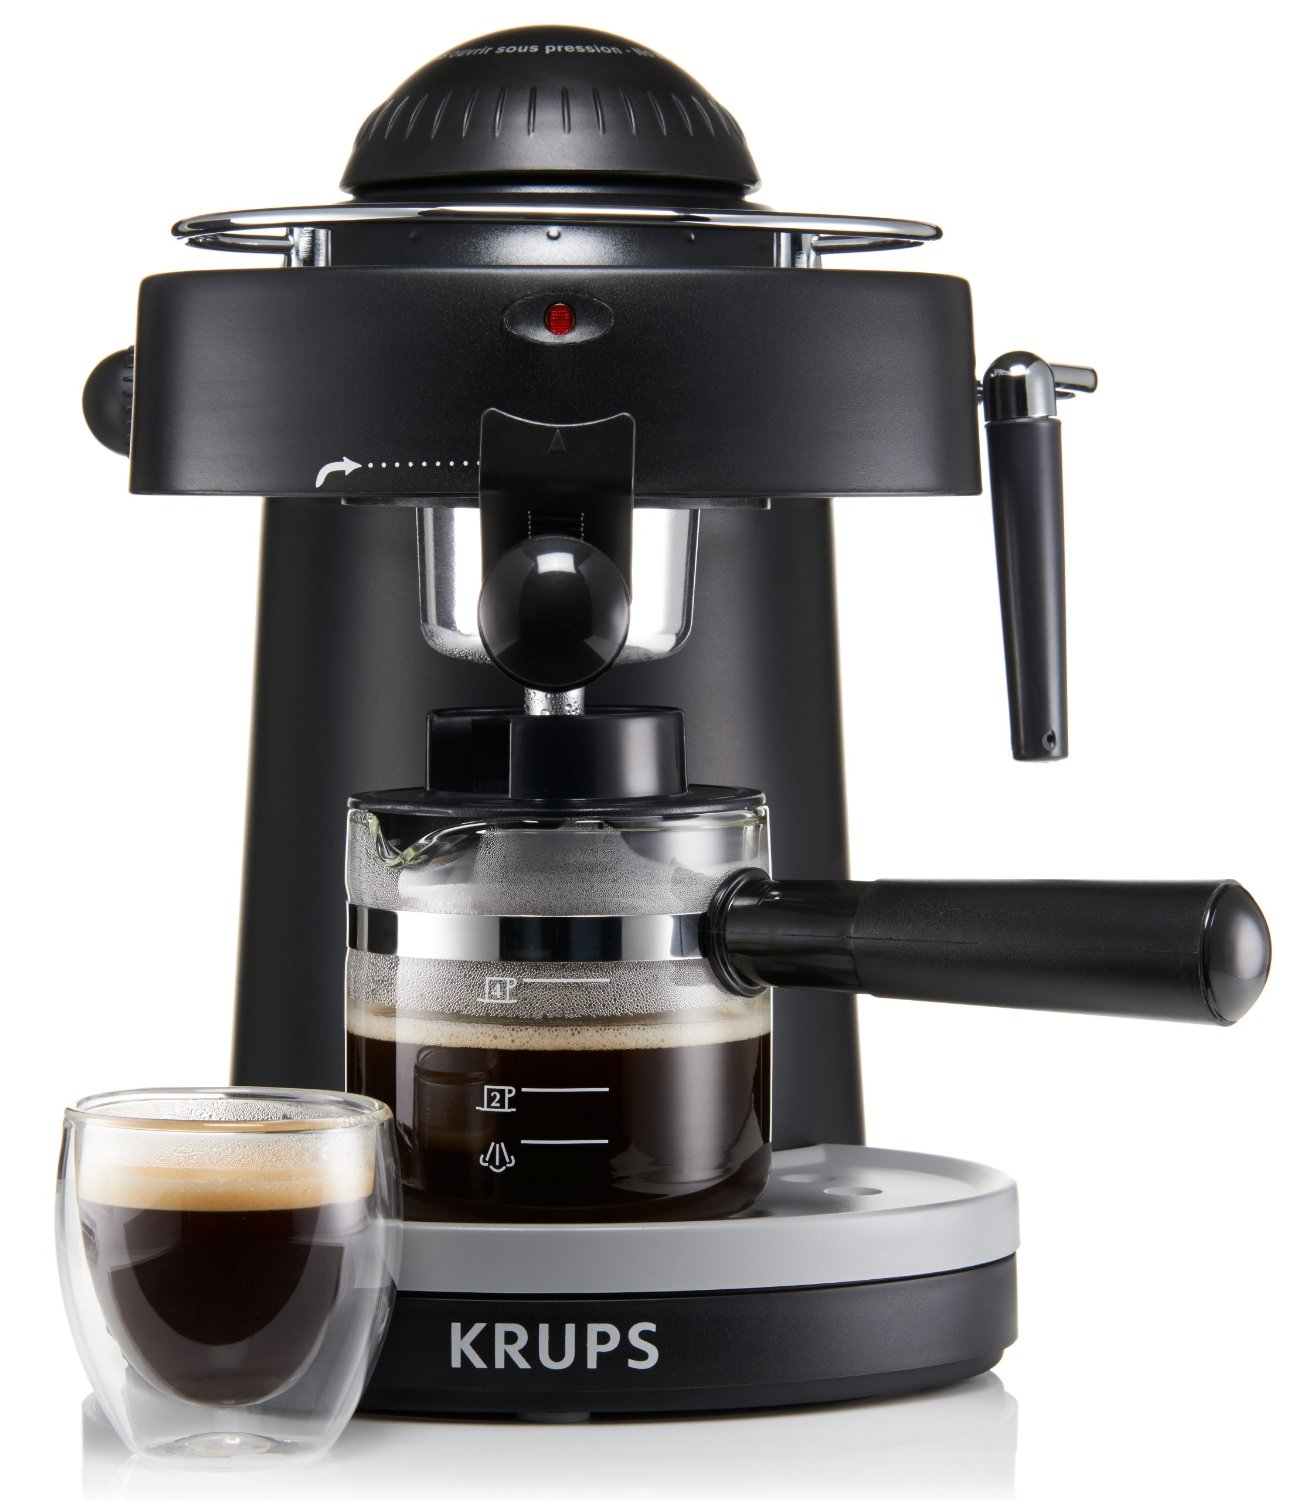 Best Coffee Makers For Home Use With Buyer's Guide